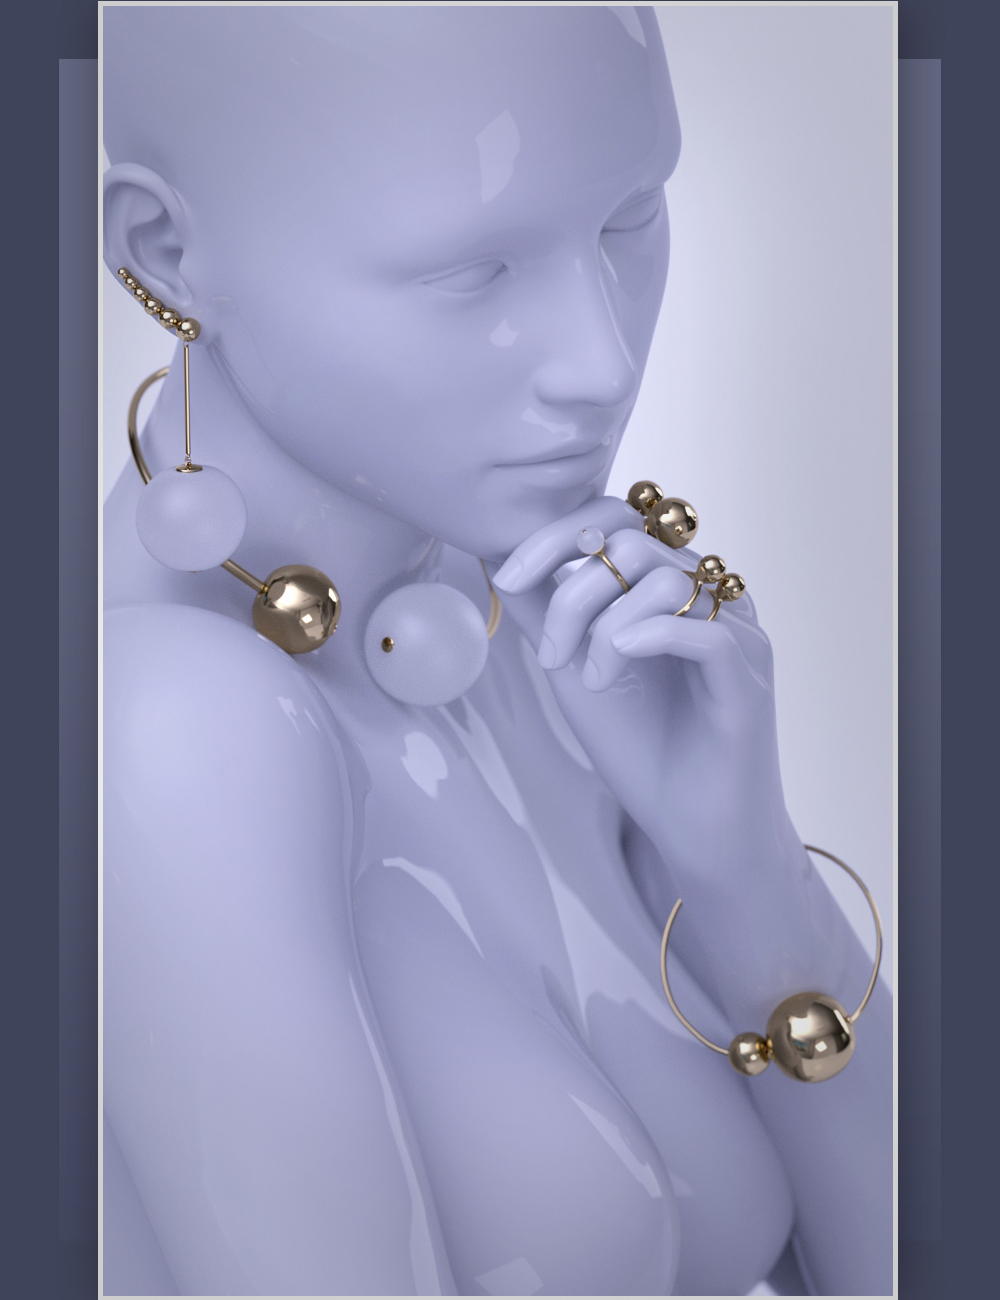 ES Sphaerae Jewelry Vol.1 for Genesis 3 Female(s) by: EyeStorm, 3D Models by Daz 3D